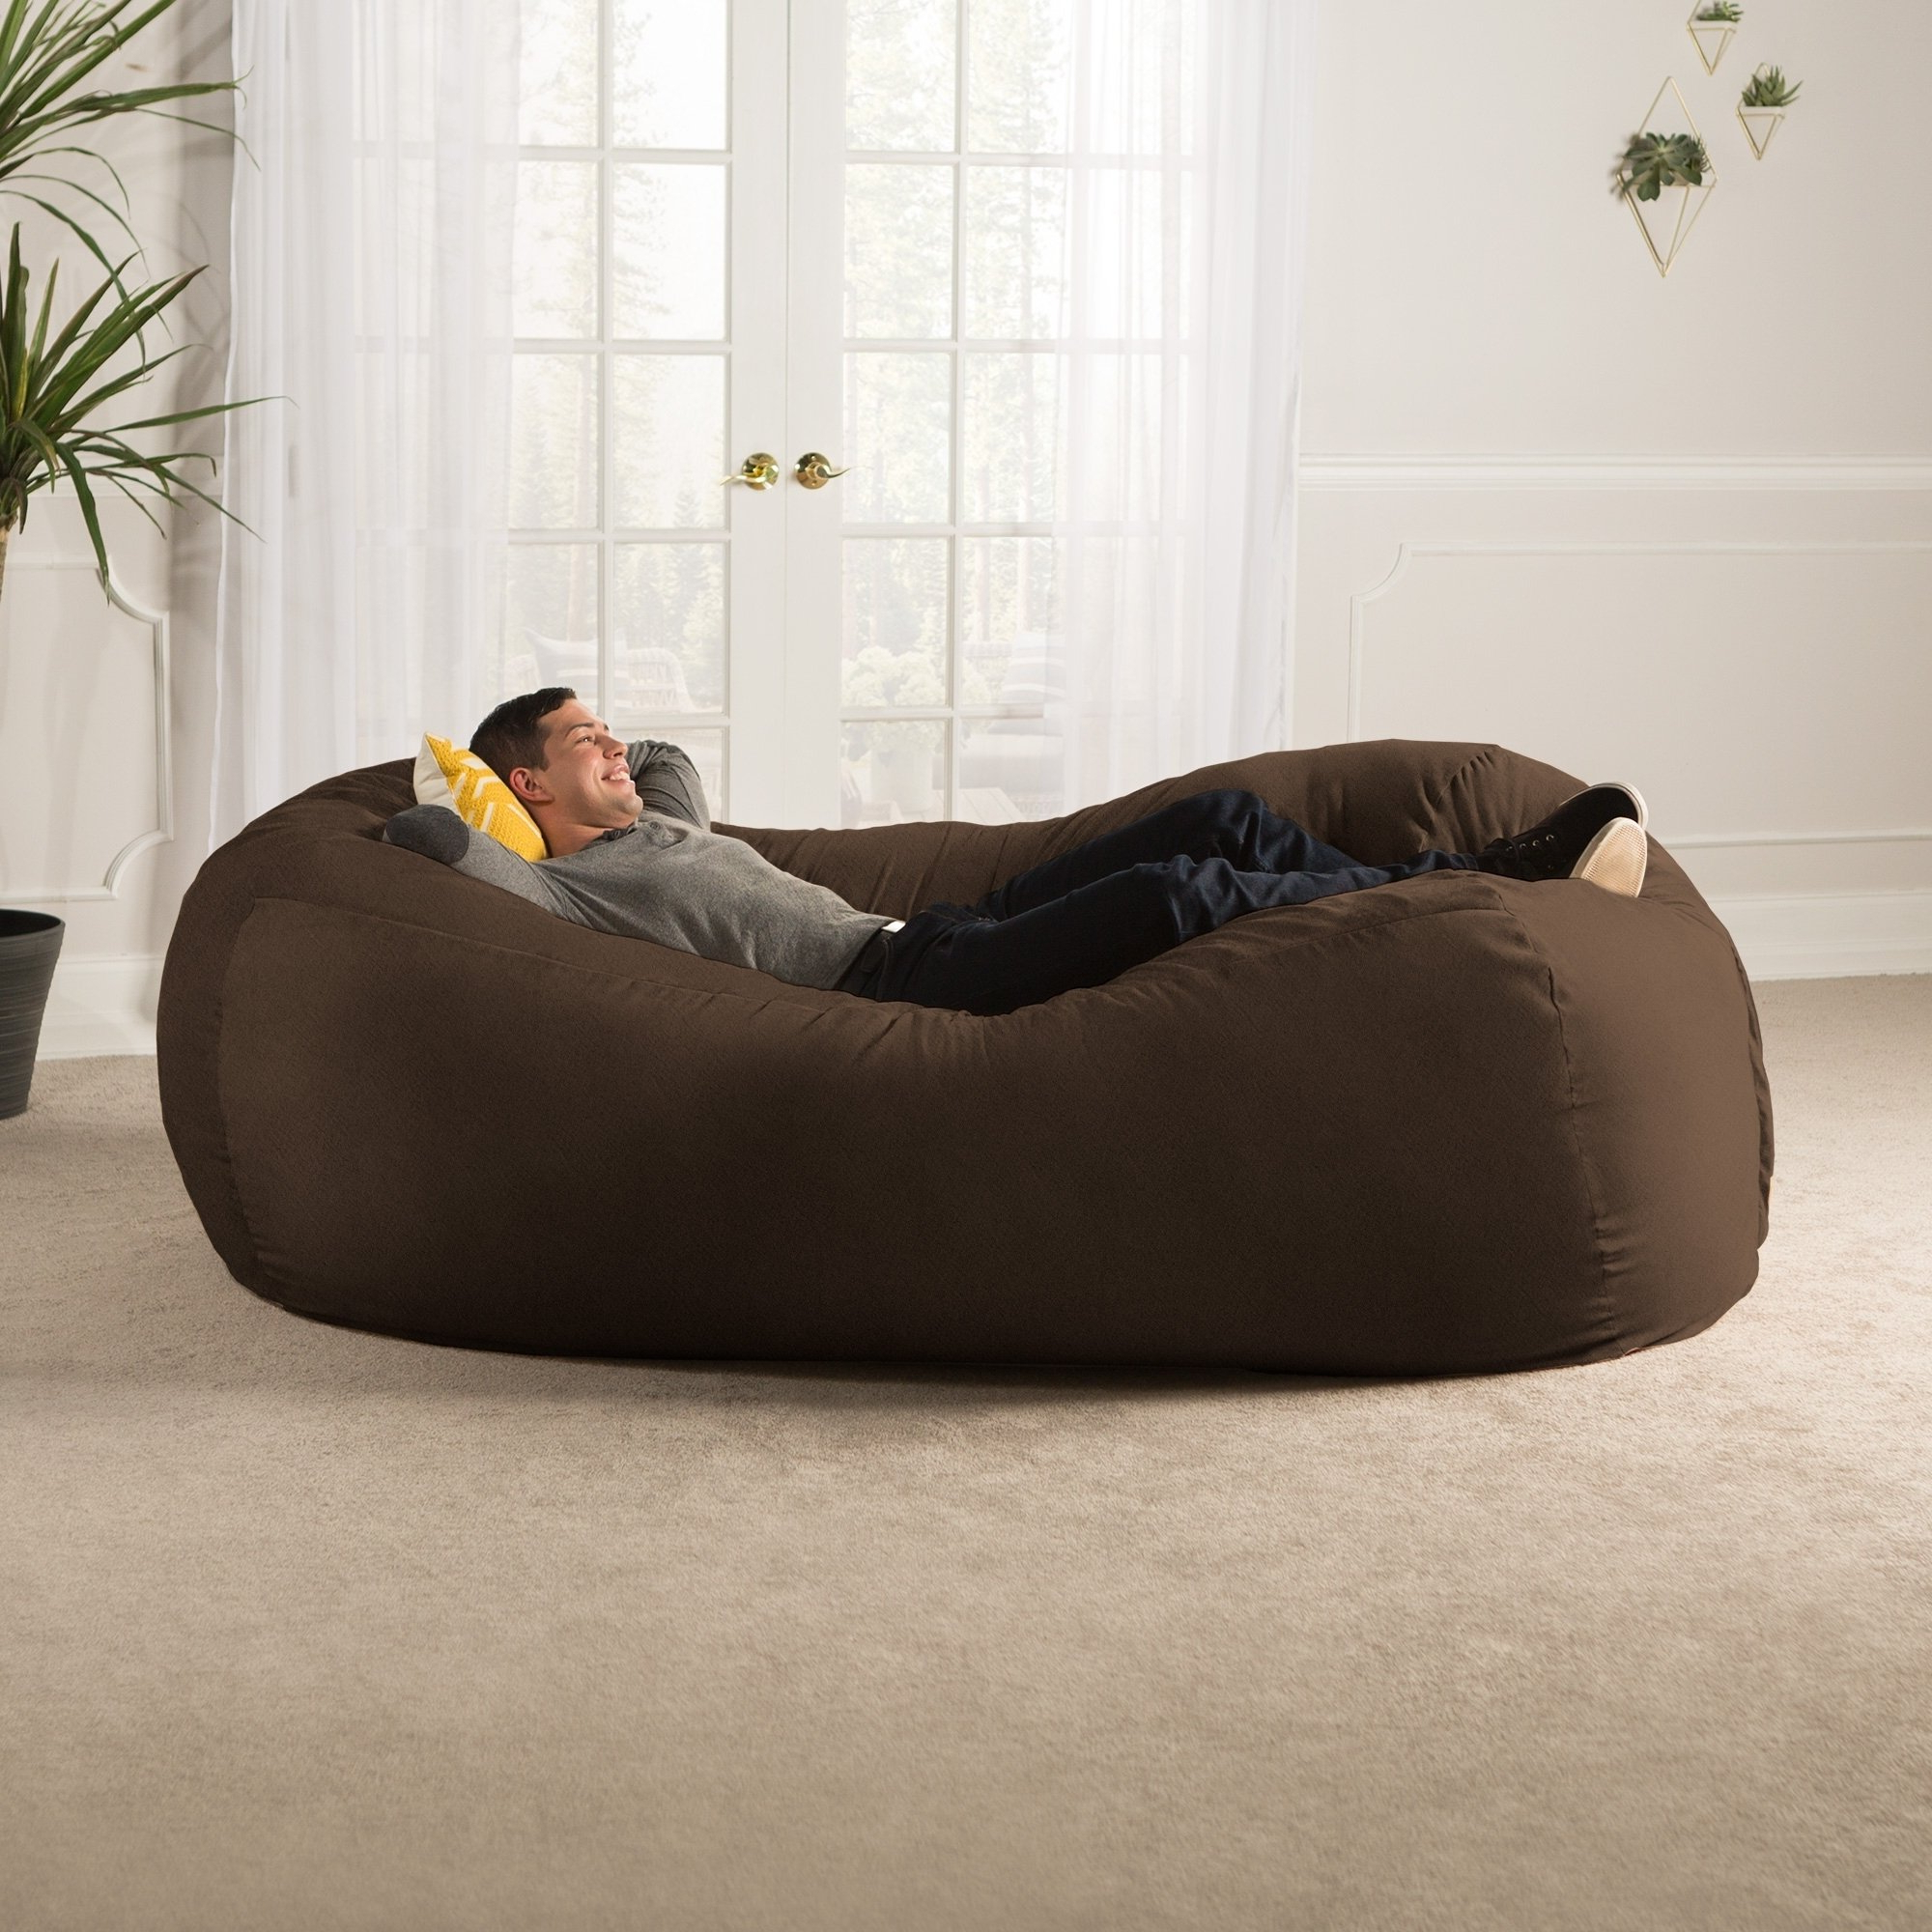 Shop Jaxx 7' Bean Bag Sofa – Free Shipping Today – Overstock With Favorite Bean Bag Sofa Chairs (View 16 of 20)